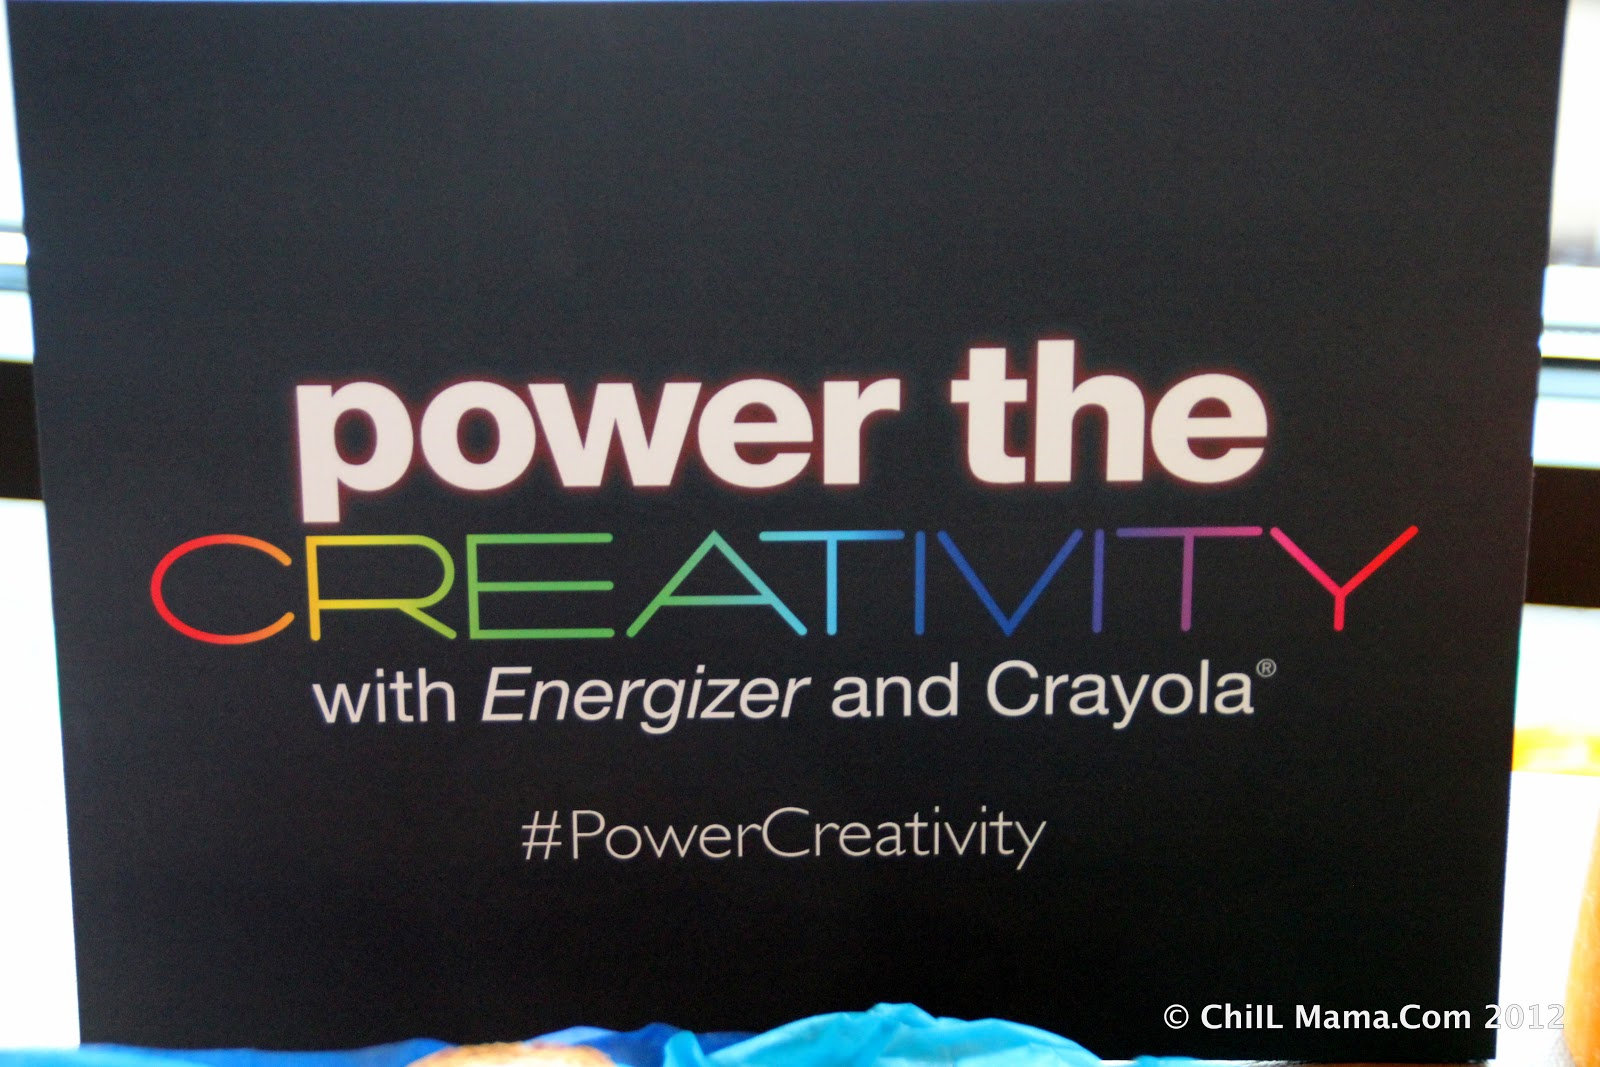 Chiil mama power the creativity with energizer crayola greatgifts at the party we all got to check out energizer flameless candles with a realistic flicker and sweet scents and creative crayola toys all powered by fandeluxe Images